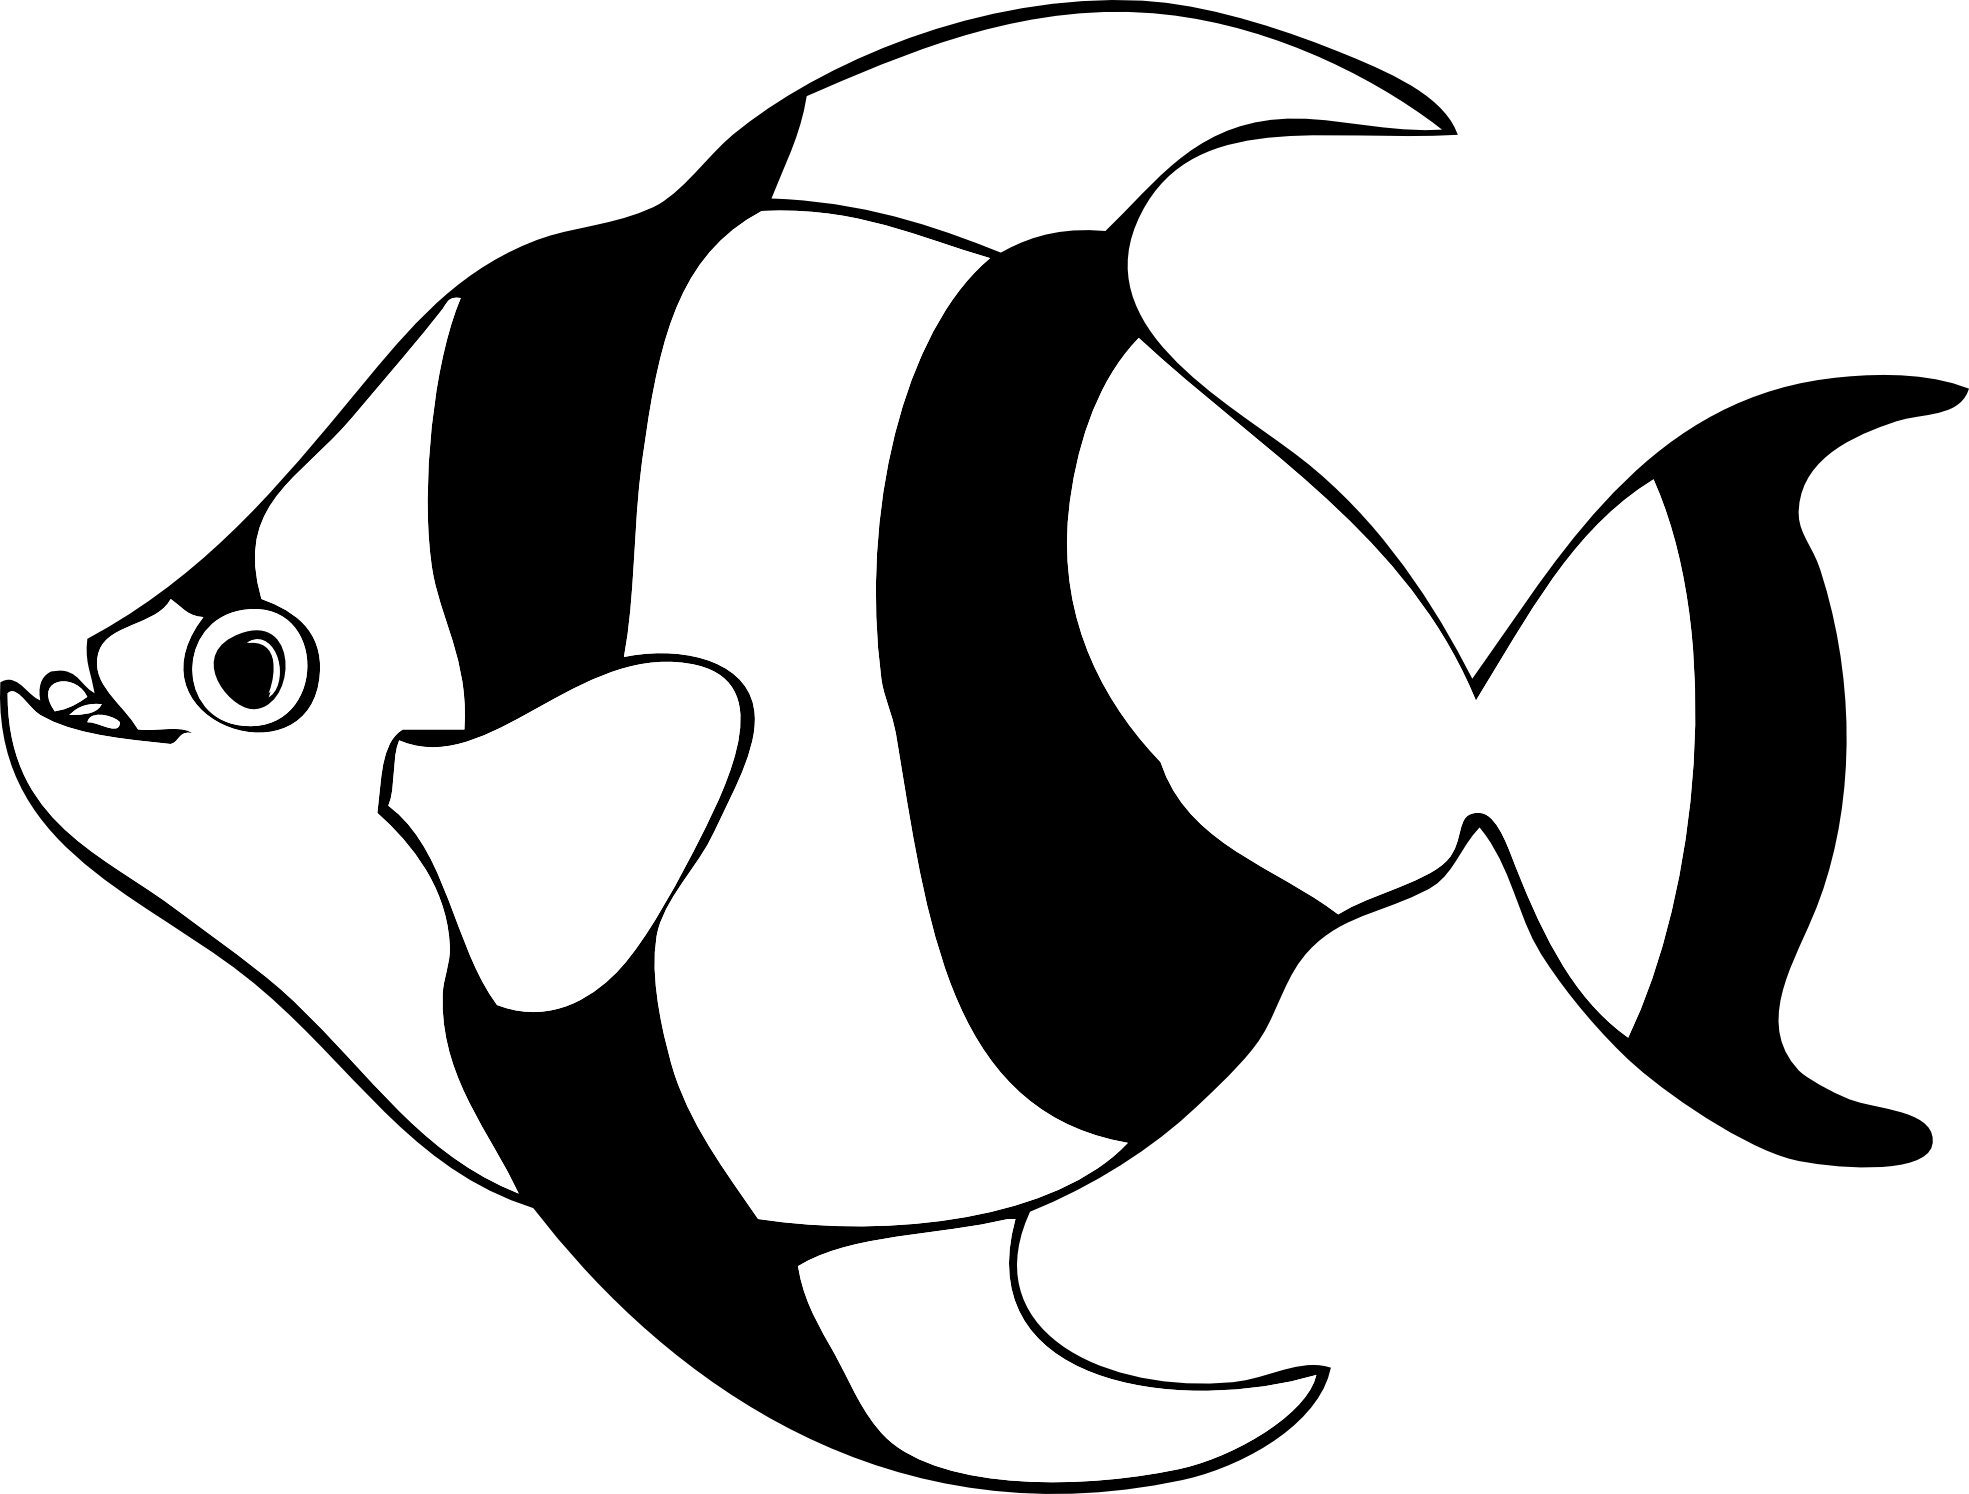 Clipart black and white fish picture black and white stock Fish Clip Art Black And White | Clipart Panda - Free Clipart Images picture black and white stock